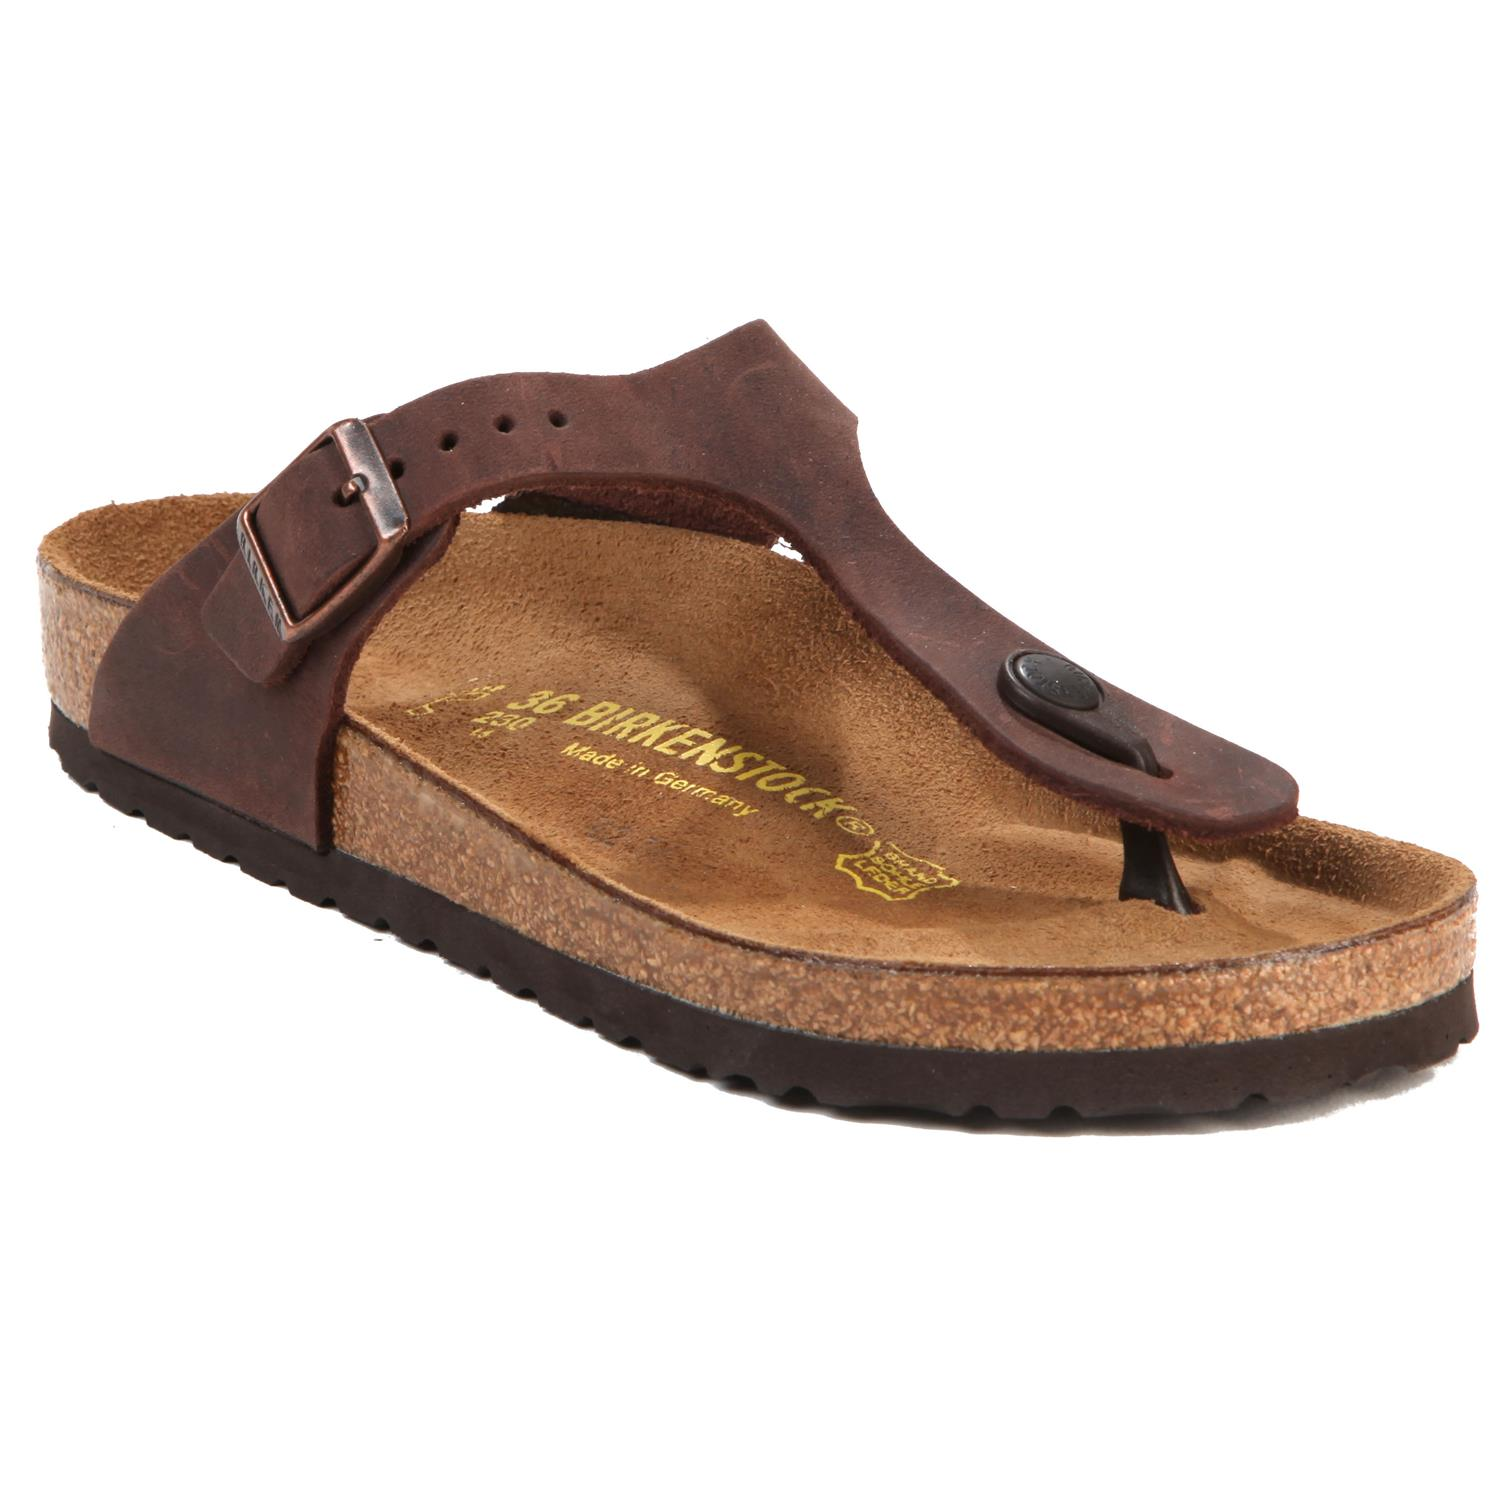 Awesome Shippped Via EBay Offers The Birkenstock Womens Gizeh SlipOn Sandals In Black Or Onyx For $6199 With Free Shipping Thats $11 Under Our Mention From Last Month And The Lowest Price We Could Find By $14 Theyre Available In